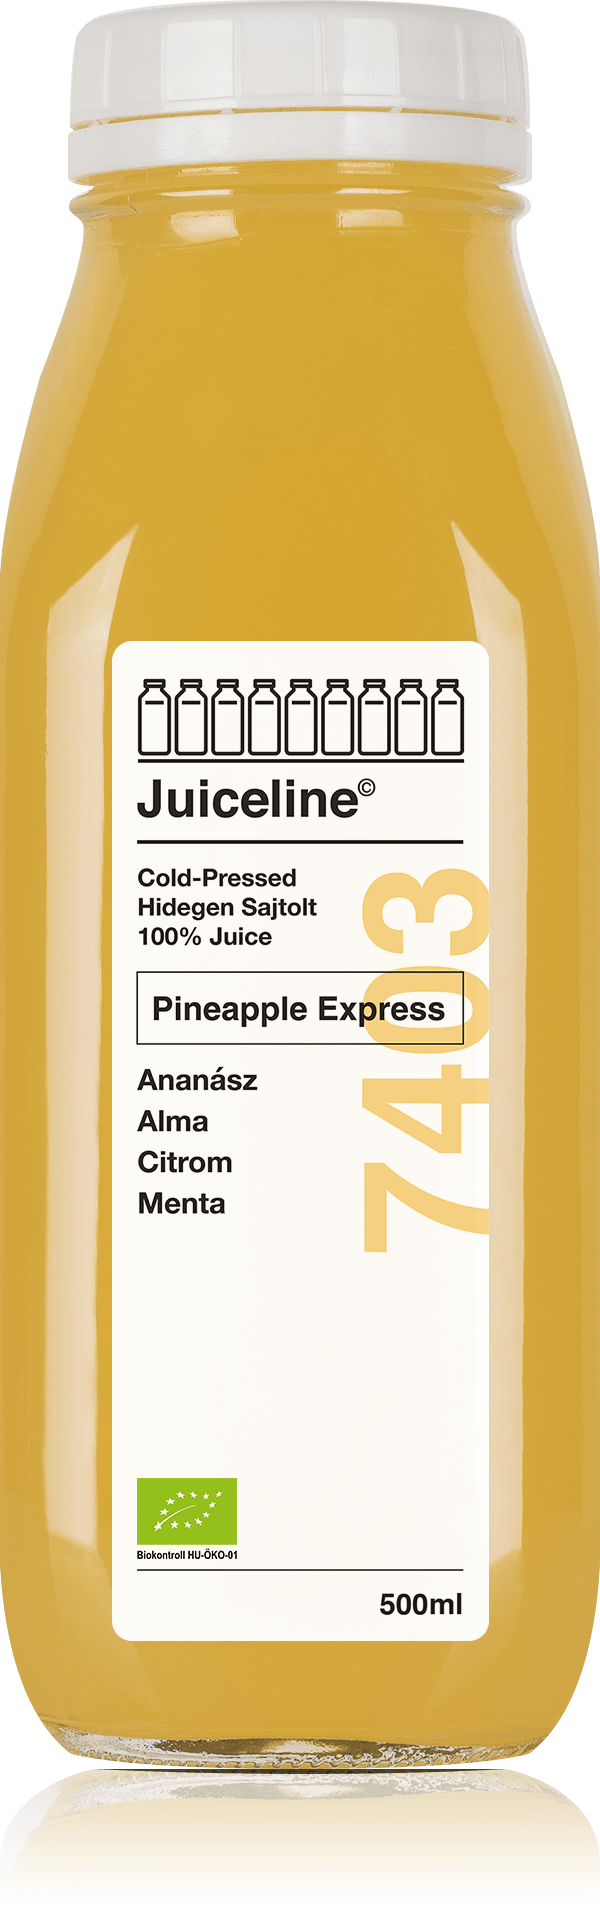 7403 Pineapple Express 500ml